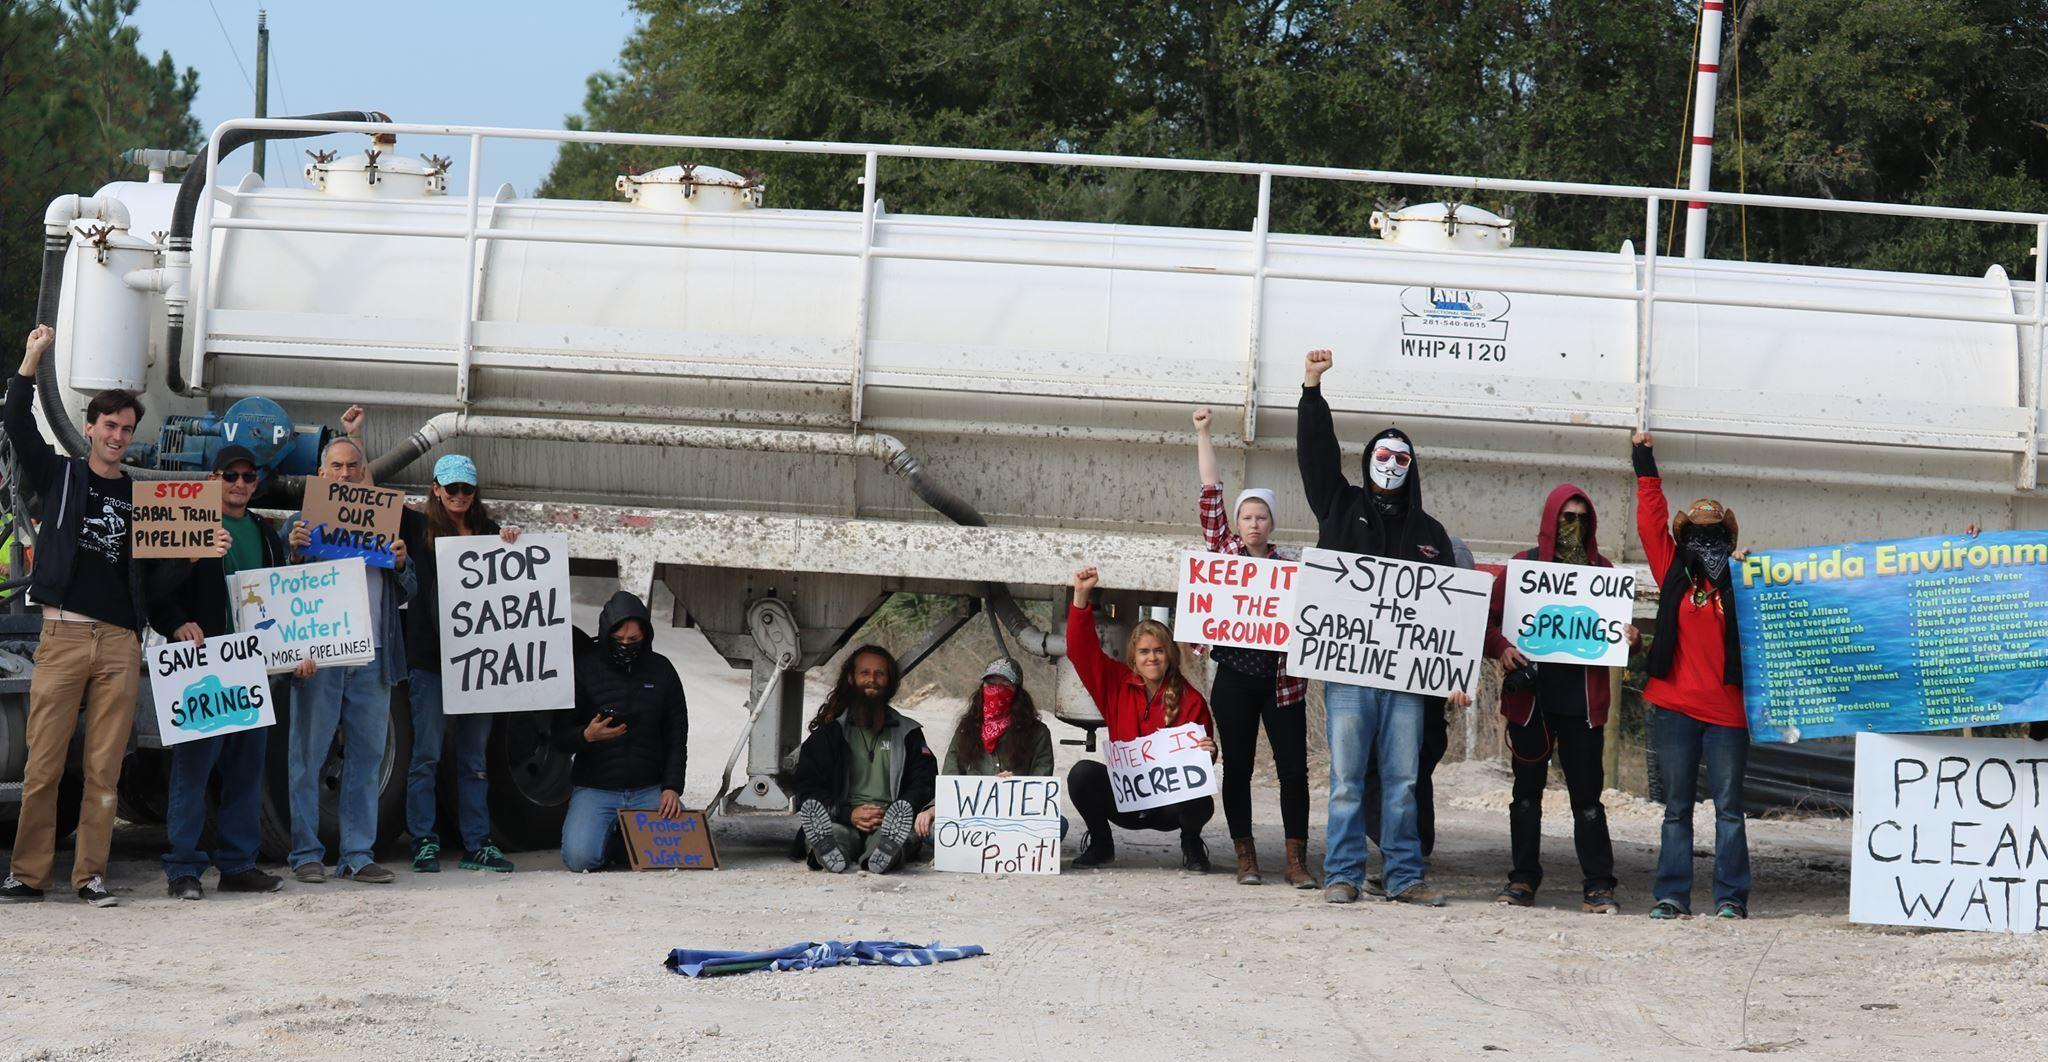 2048x1062 Standing protesters and water truck, in Florida Drops All Charges Against the 14 Gilchrist County Sabal Trail Protesters, by John S. Quarterman, for WWALS.net, 17 July 2017